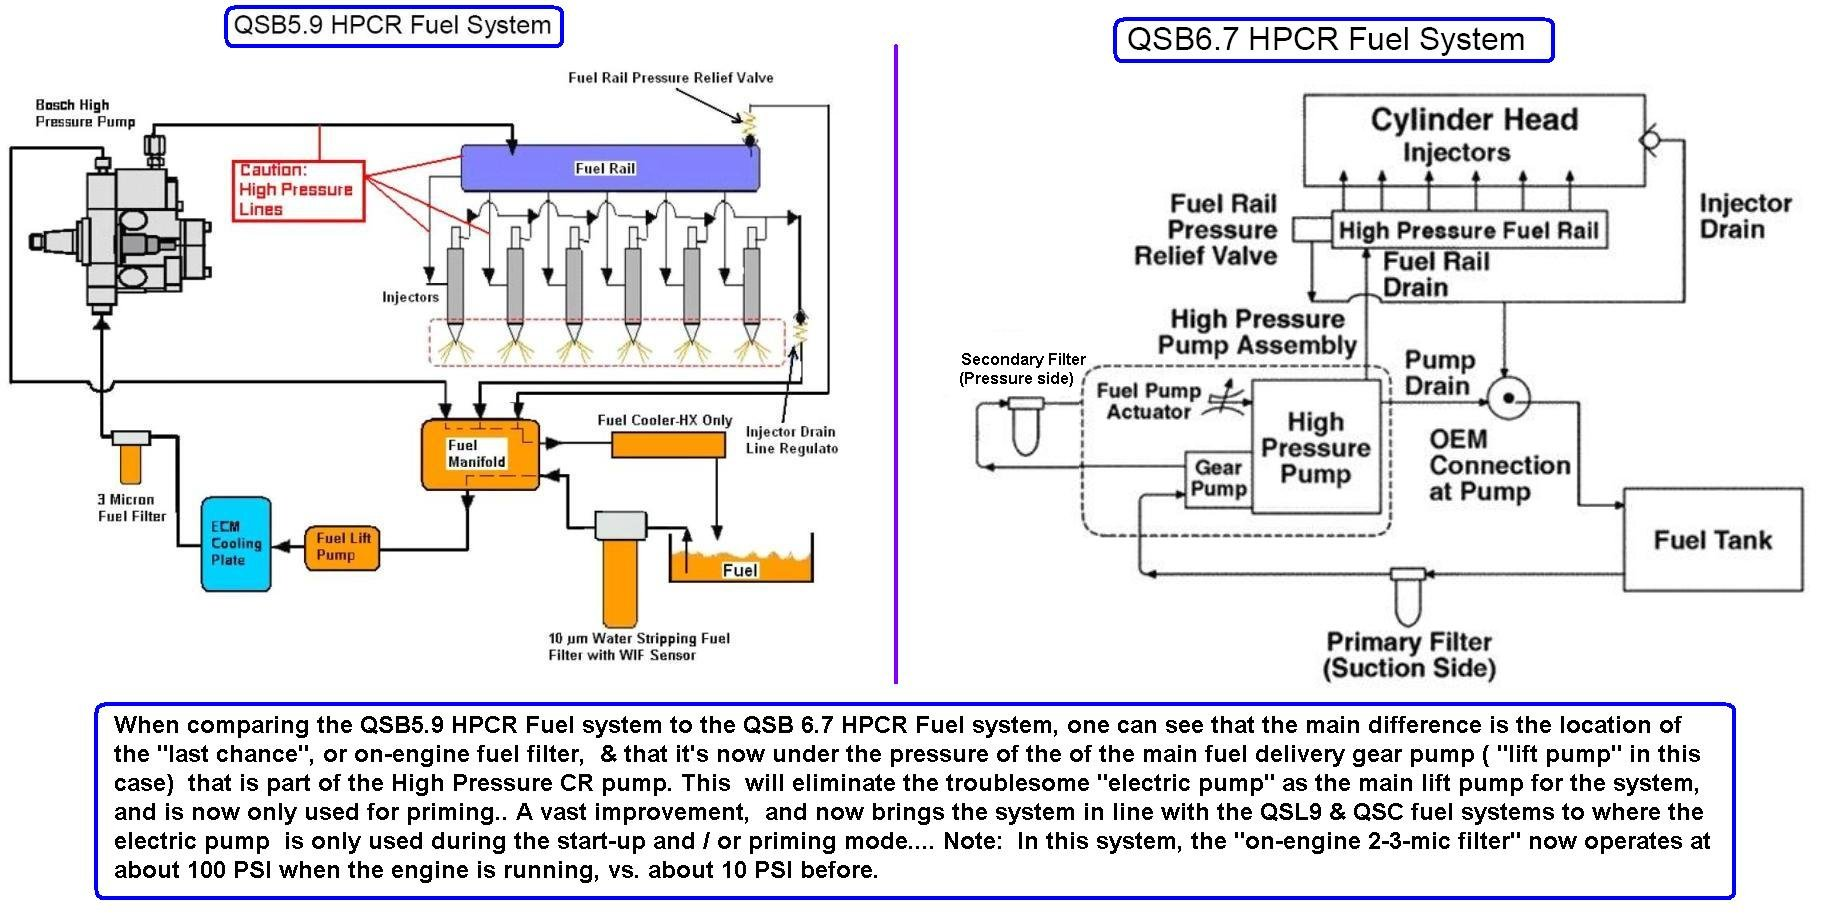 Mercedes C230 Fuse Diagram Daily Update Wiring Diagrams Dodge 5 9 Sel Engine Cooling Free Download Box 2002